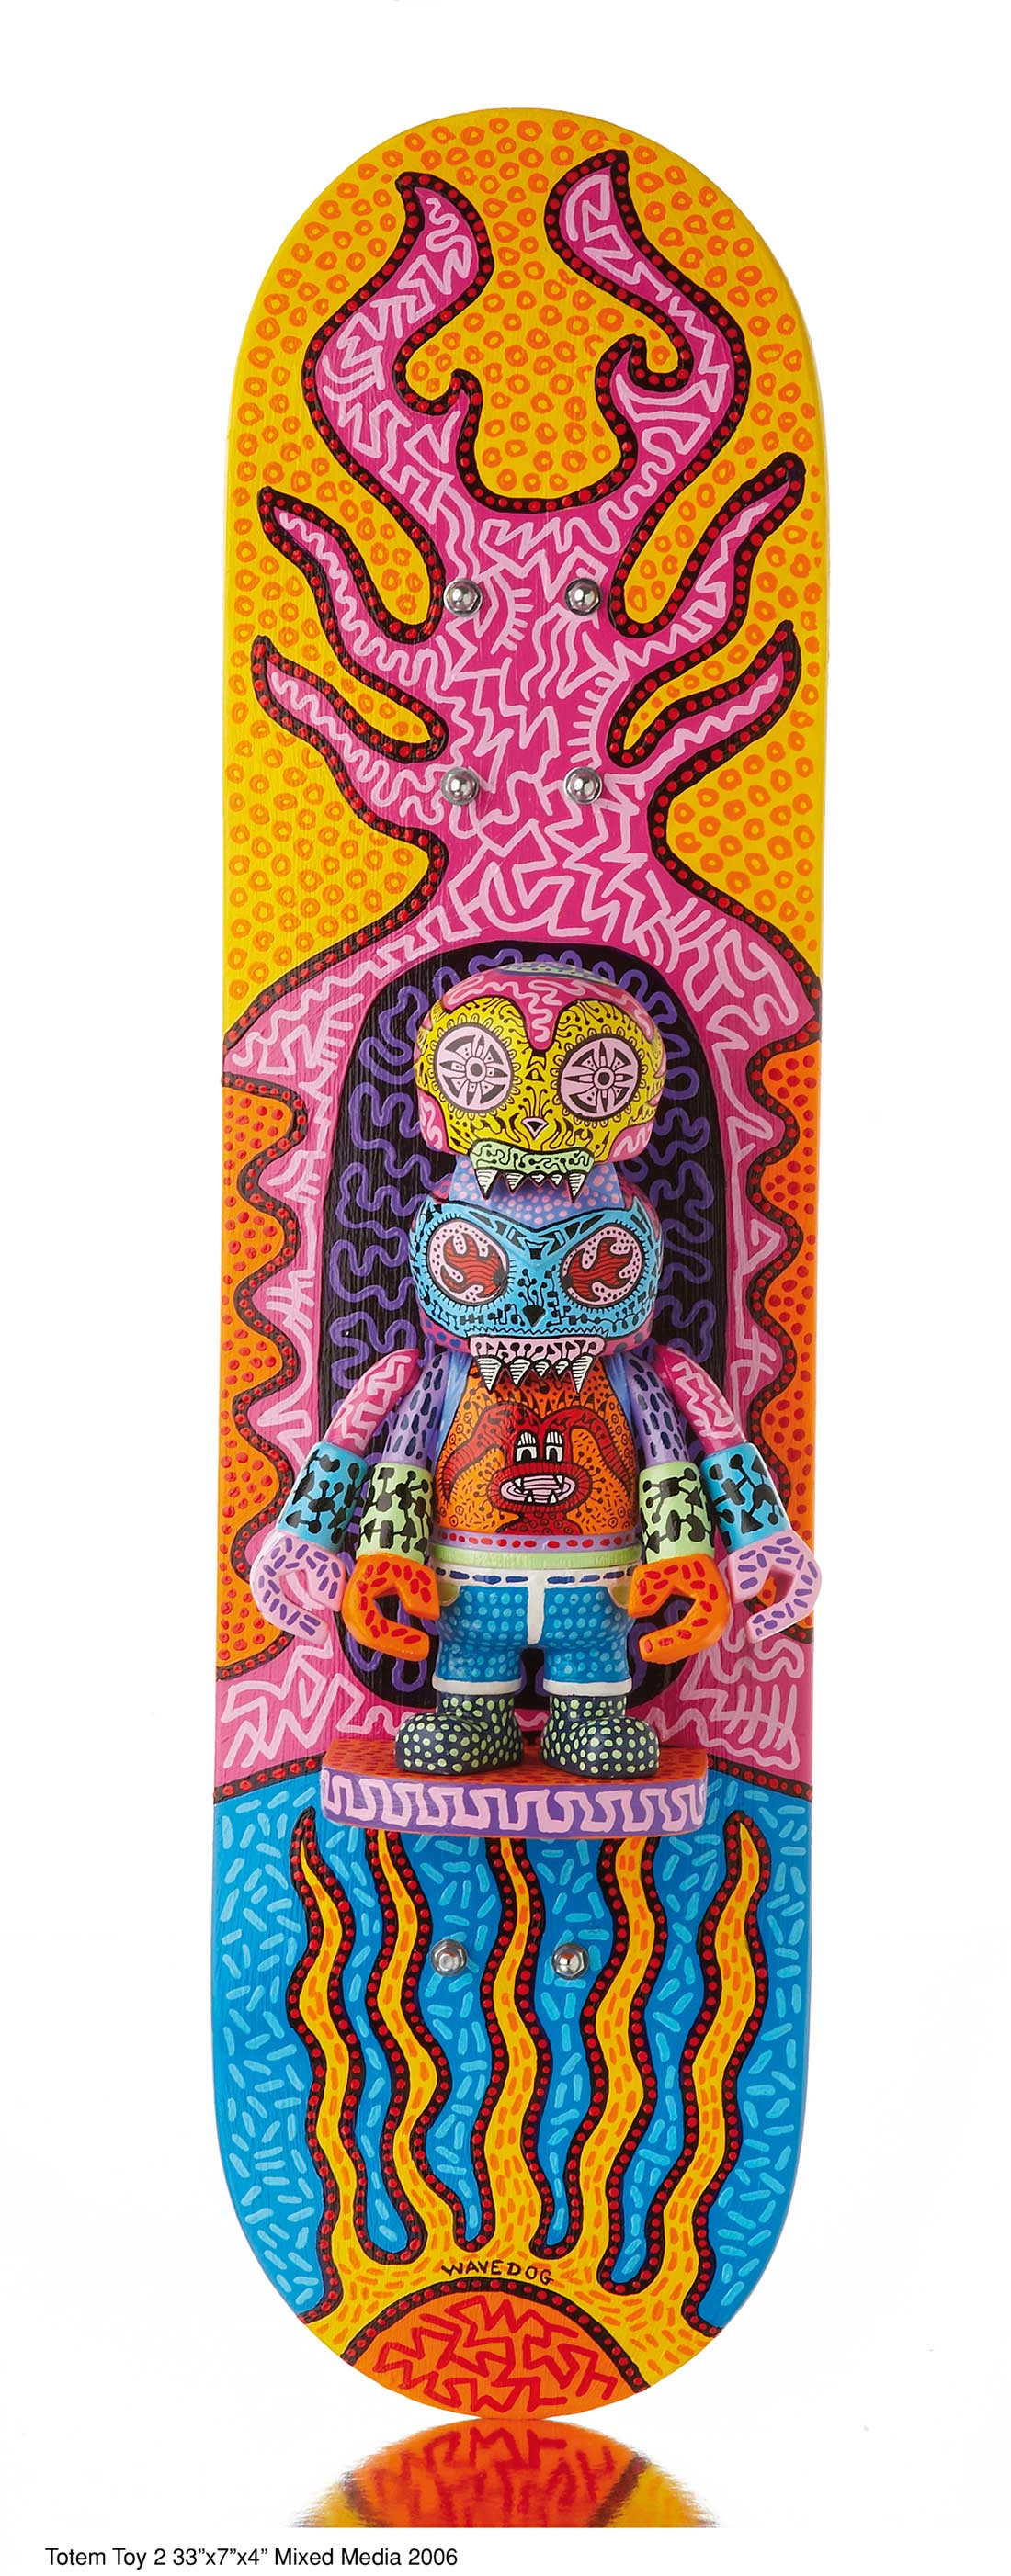 »Totem Toy 2« 33x7x4'' Mixed Media 2006